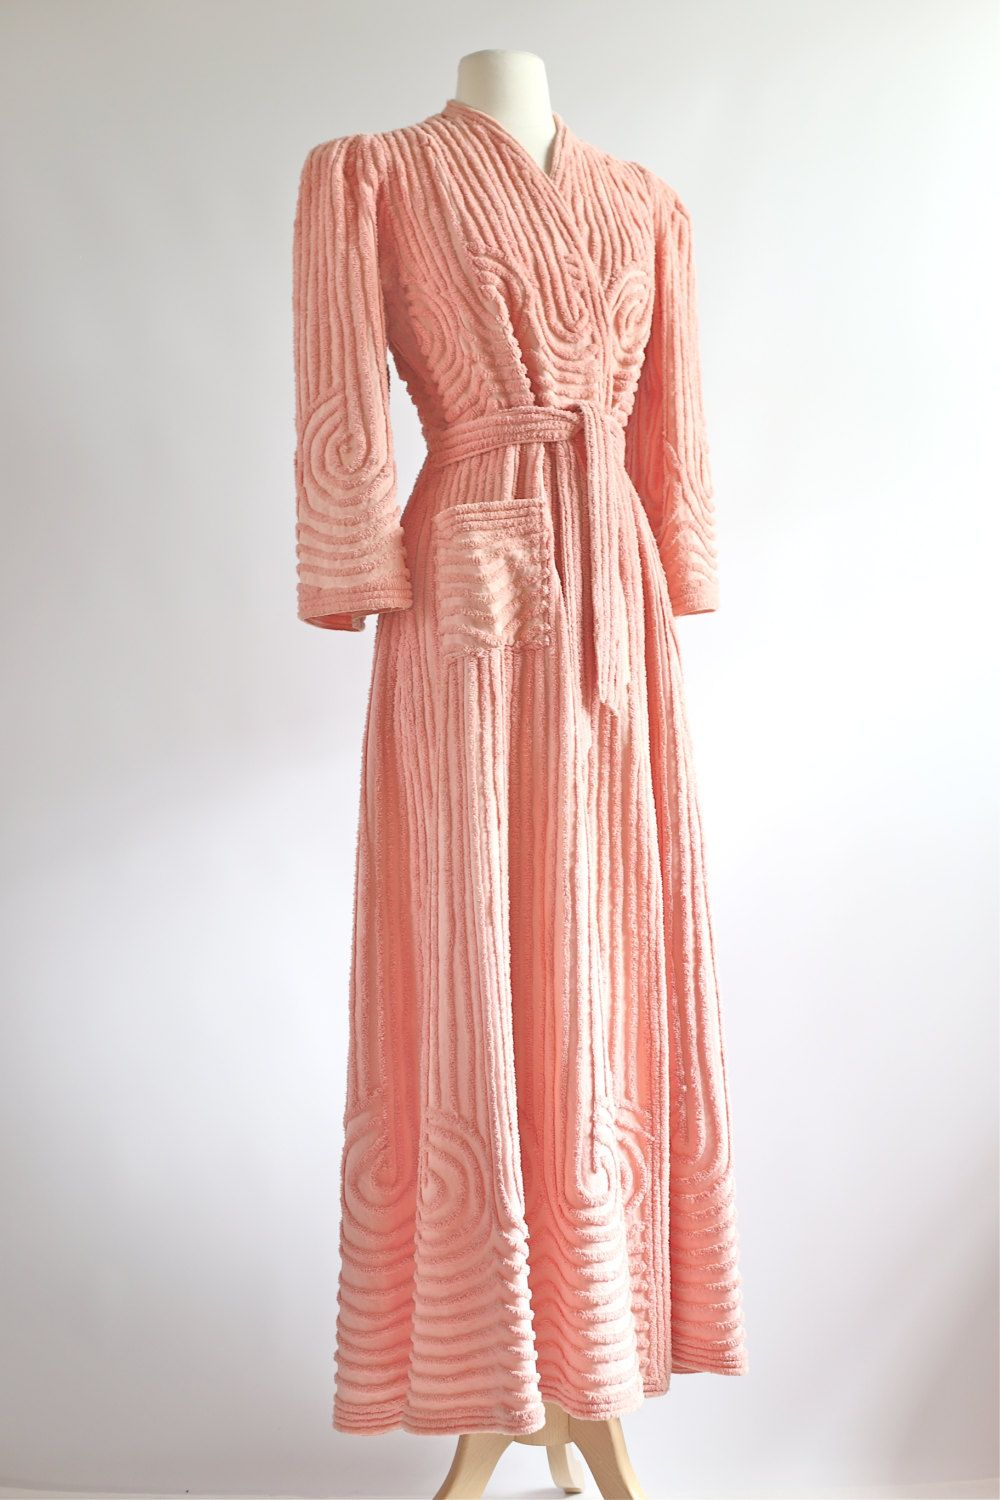 92c22616a0 Vintage 1930s Chenille Robe ~ 30s Rose Blush Chenille Bathrobe ~ Vintage  30s Art Deco Robe by xtabayvintage on Etsy